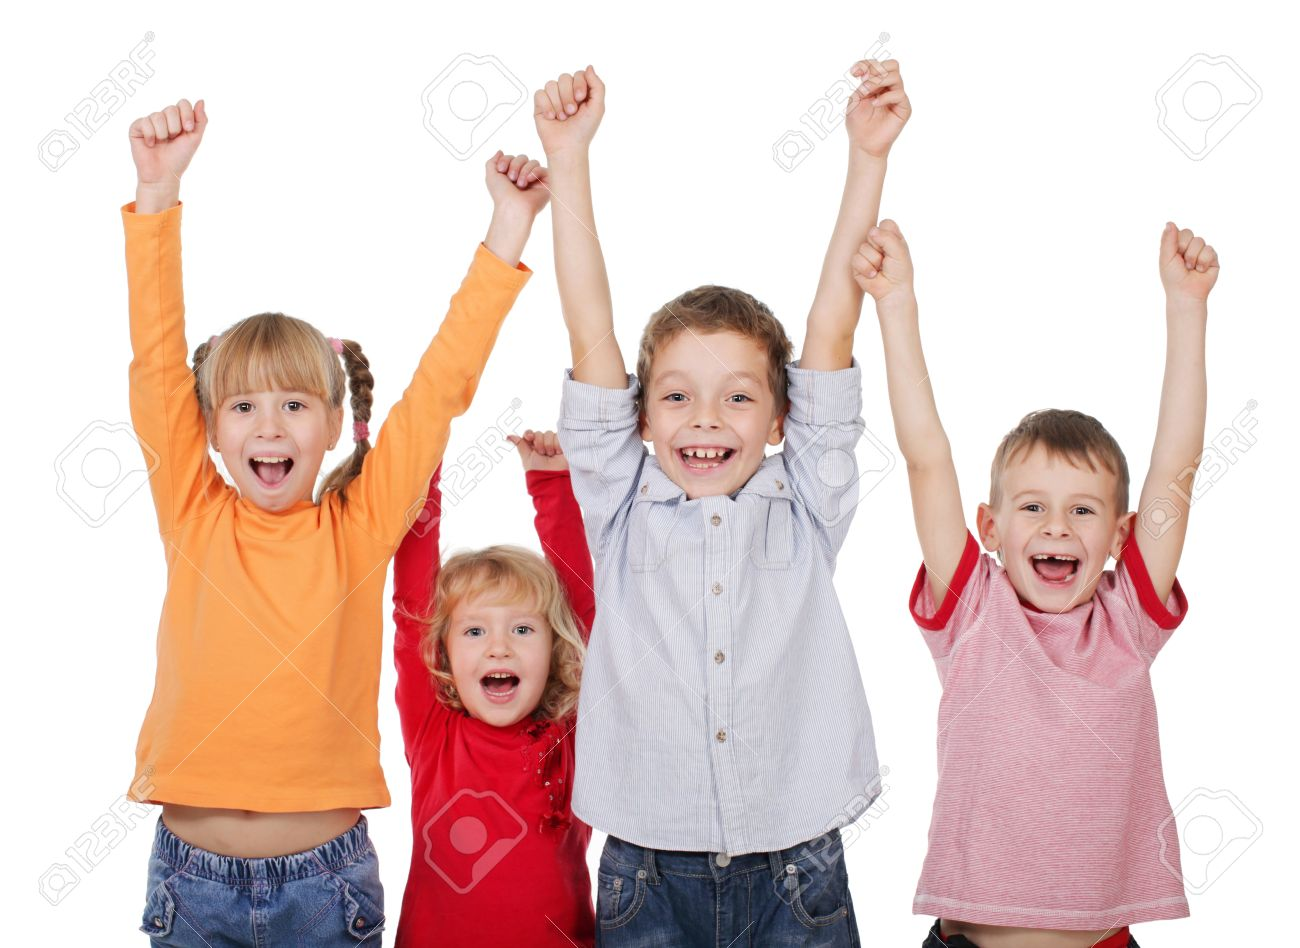 11204205-Happy-kids-with-their-hands-up-isolated-on-white-Stock-Photo-children